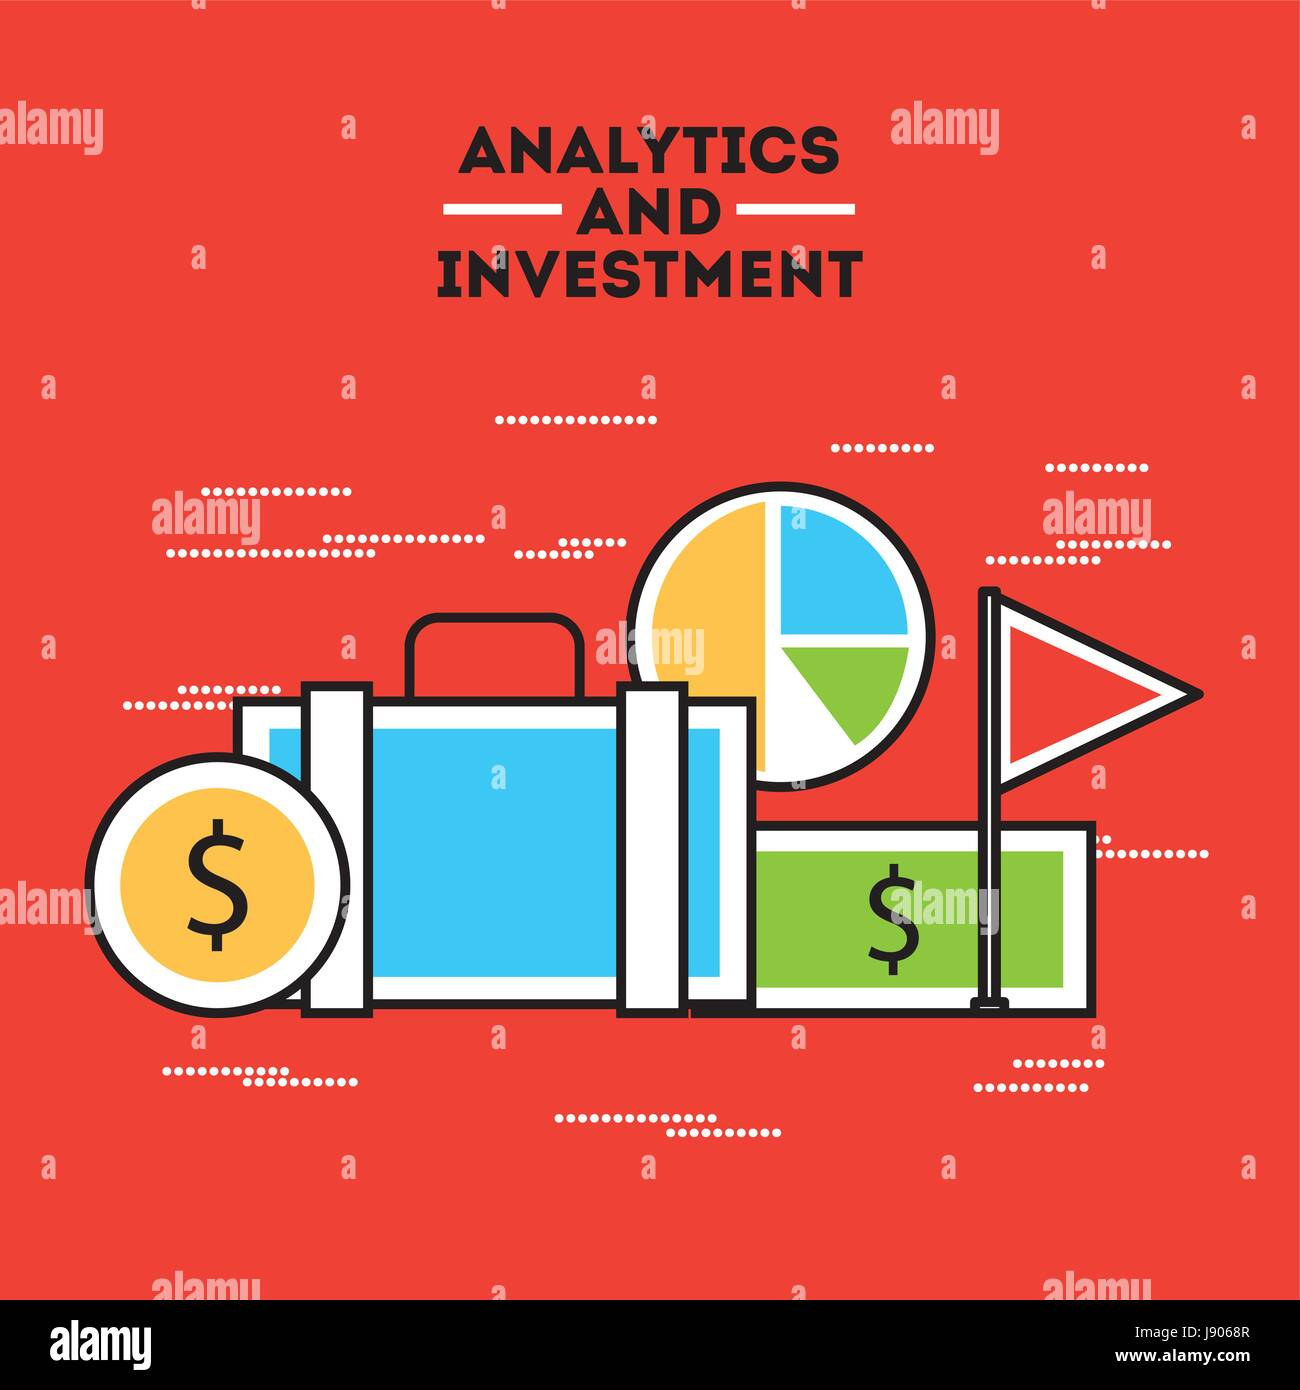 analytic and investments flat - Stock Image